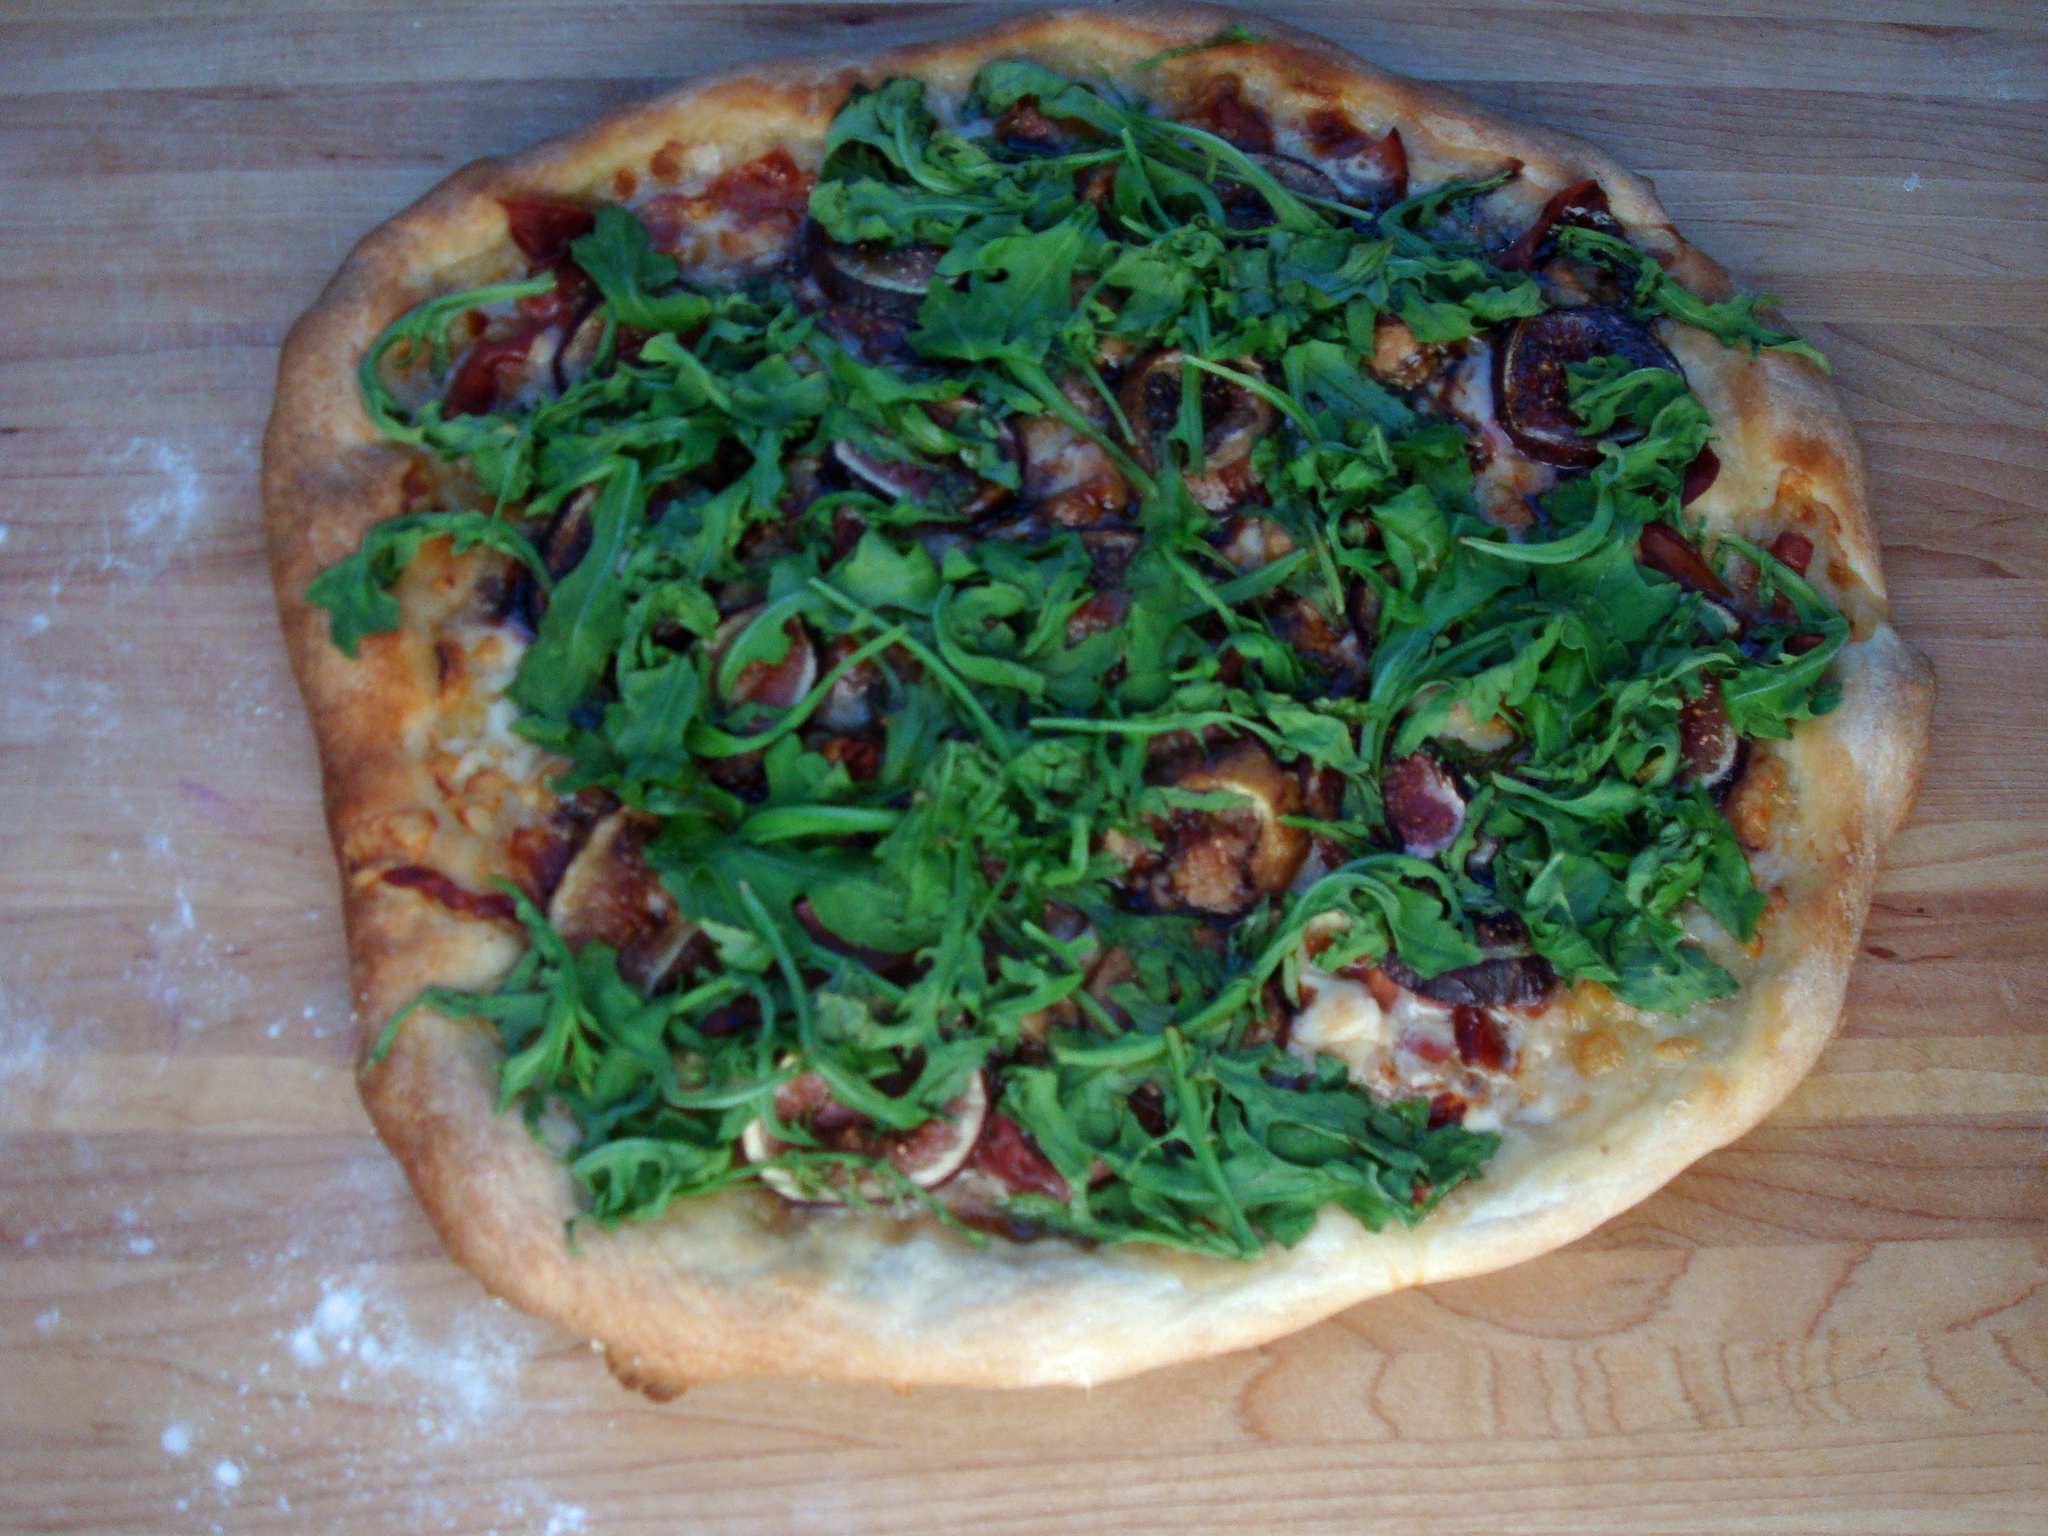 ... pizza with fontina and arugula grilled pizza with figs prosciutto